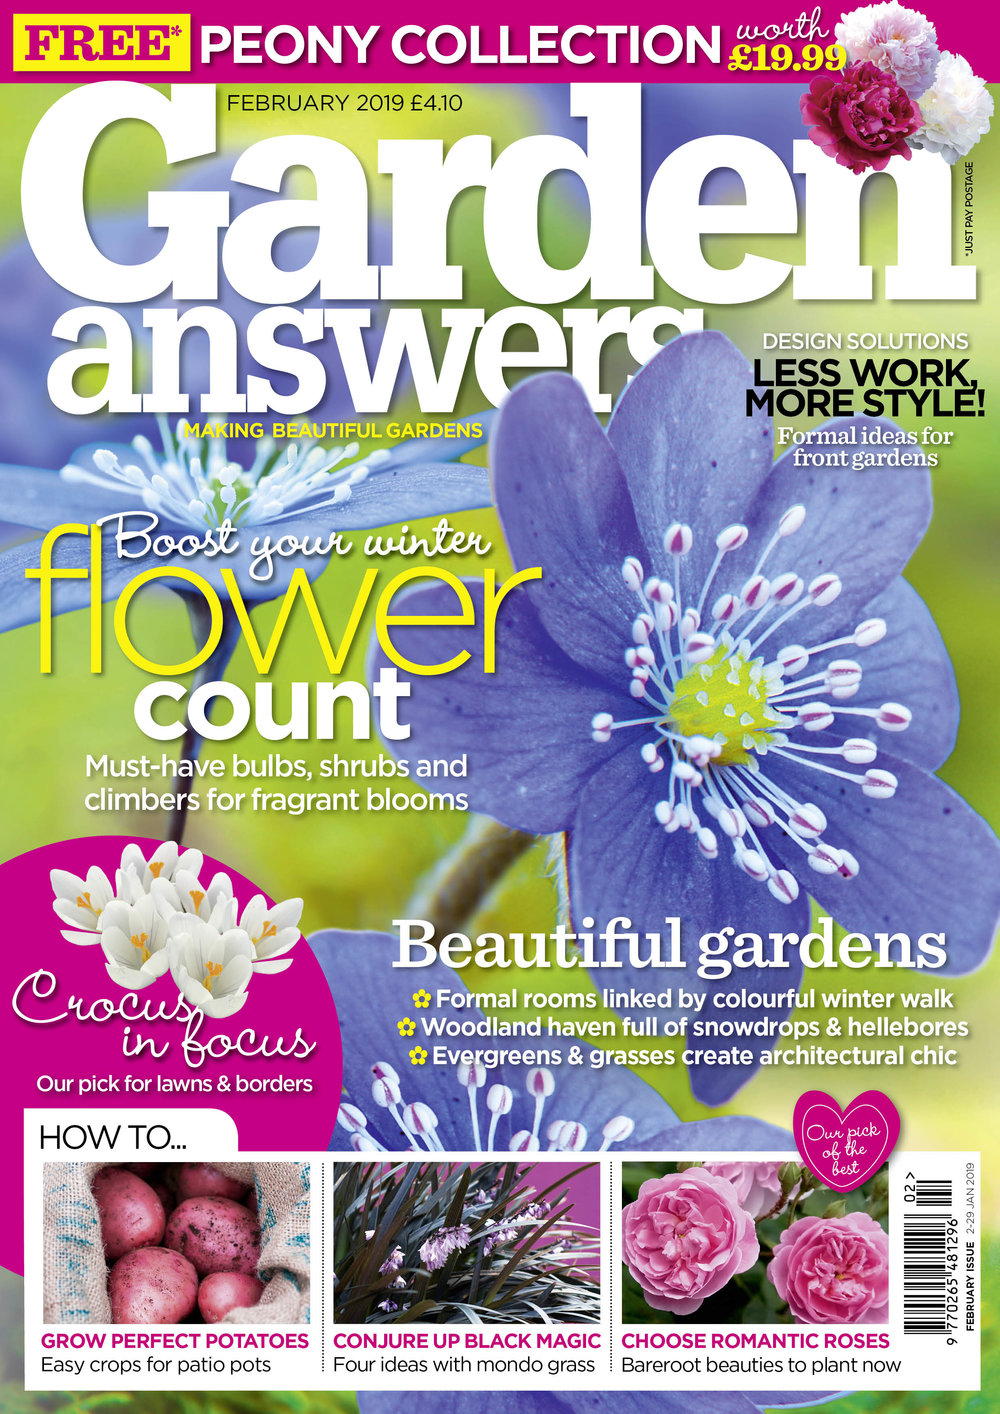 Garden Answers Feb 2019 cover.jpg